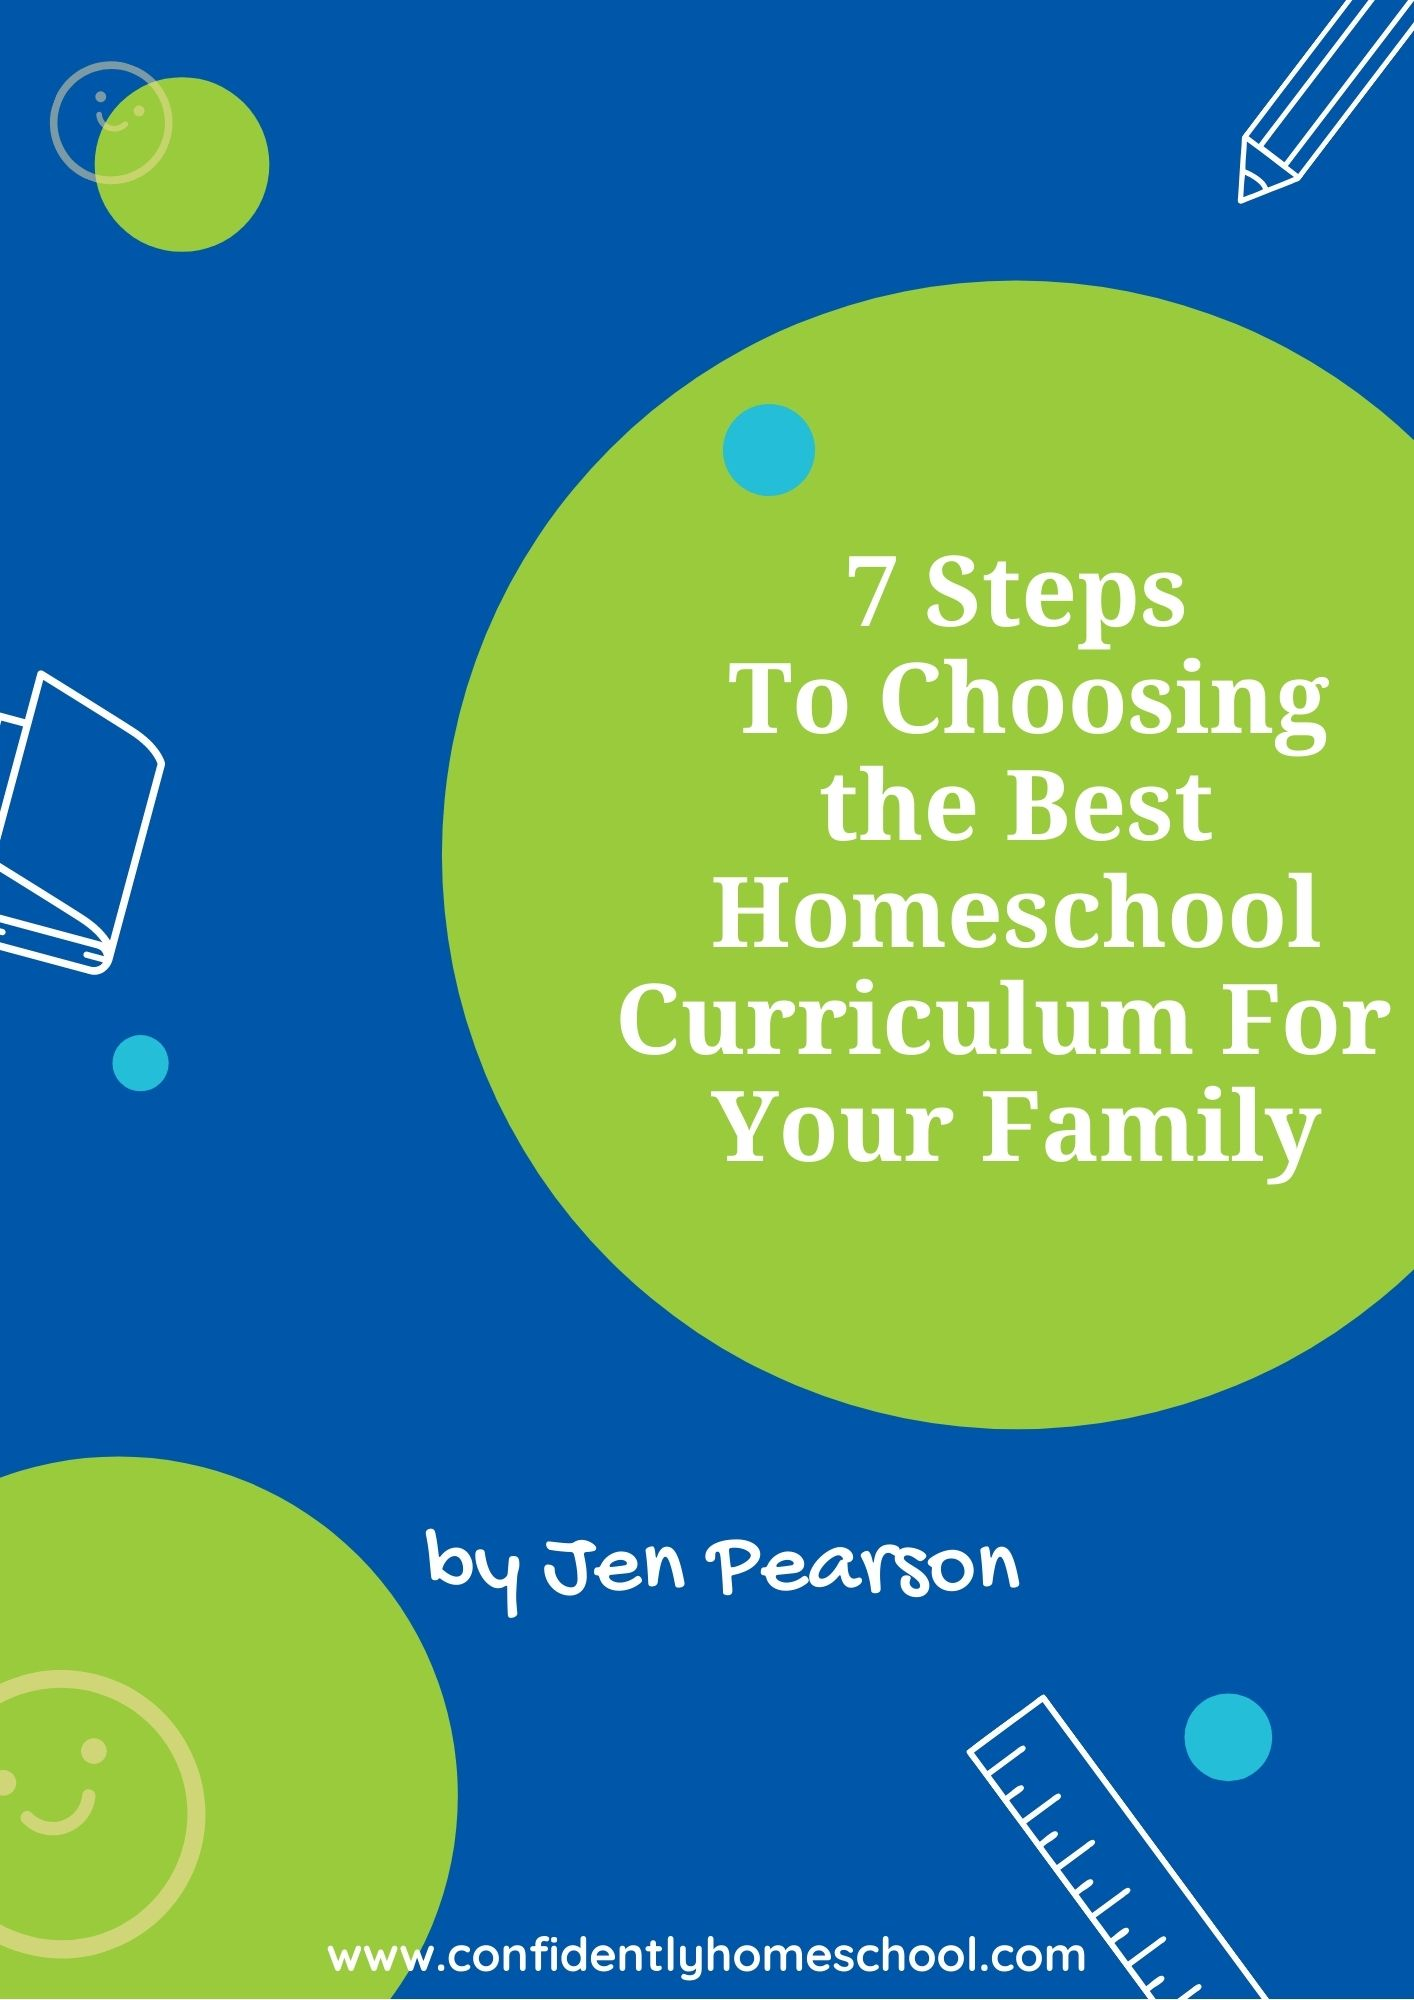 7 Steps to Choosing the Best Homeschool Curriculum for Your Family cover